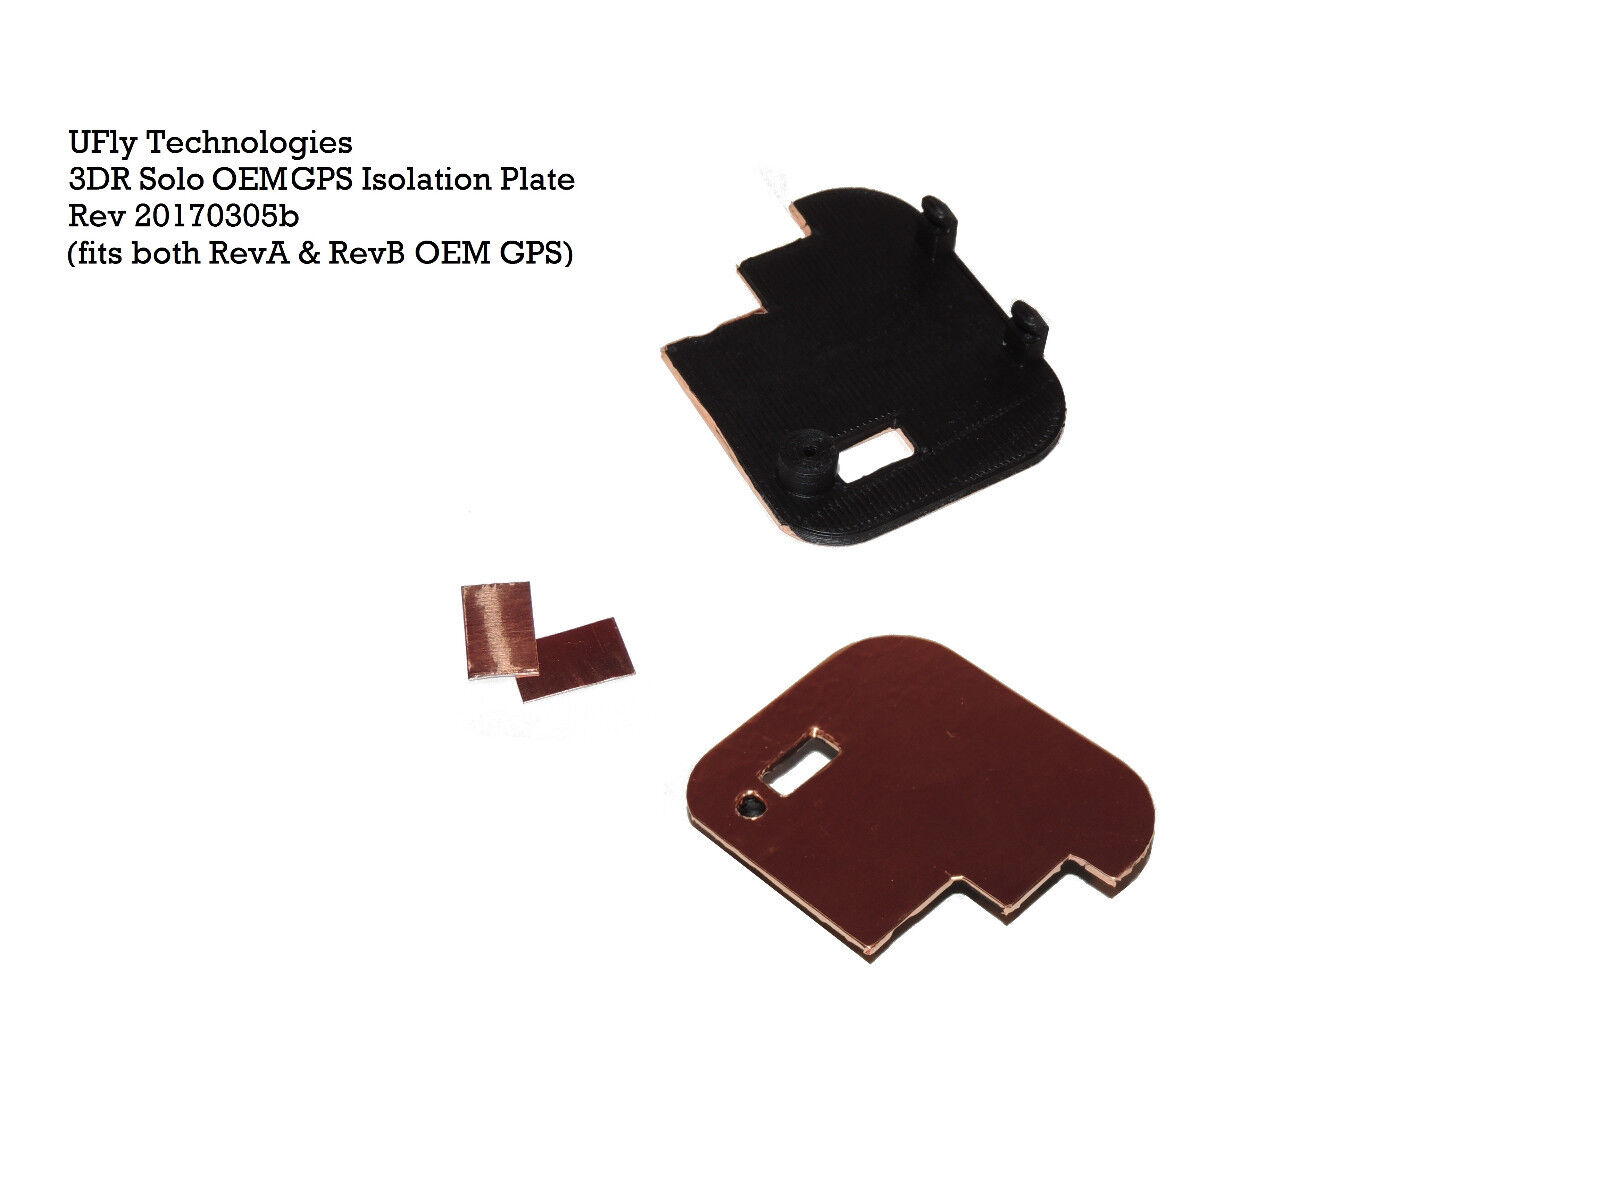 UFly Technologies 3DR Solo OEM GPS Isolation Plate